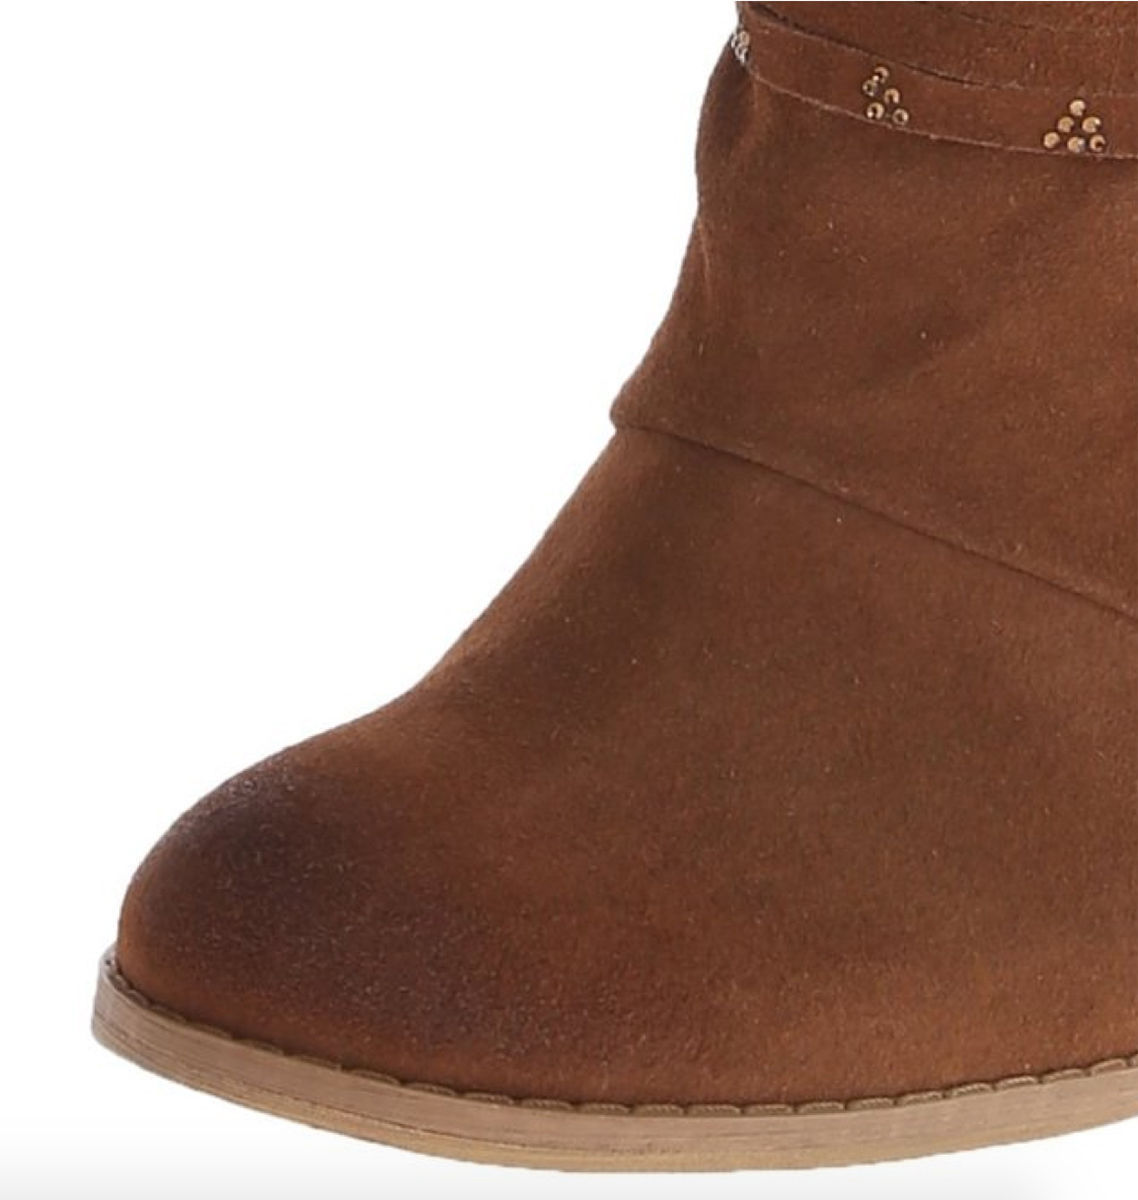 monkey boots suede leather jeweled and 50 similar